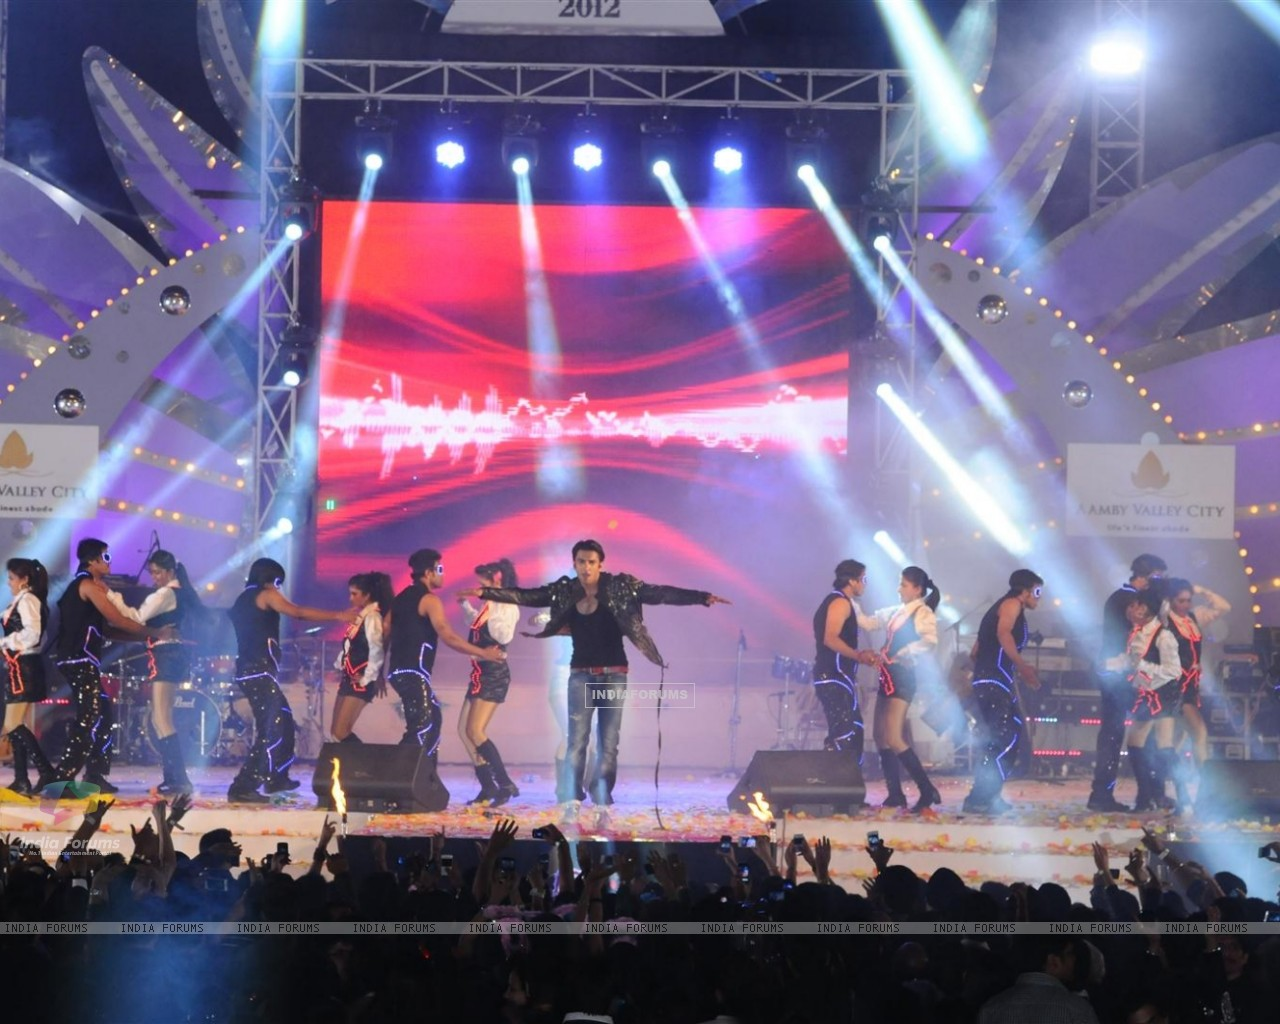 Ranveer Singh performing at Aamby Valley City for New Year's Eve event at Hotel Sahara Star in Lonav (176989) size:1280x1024